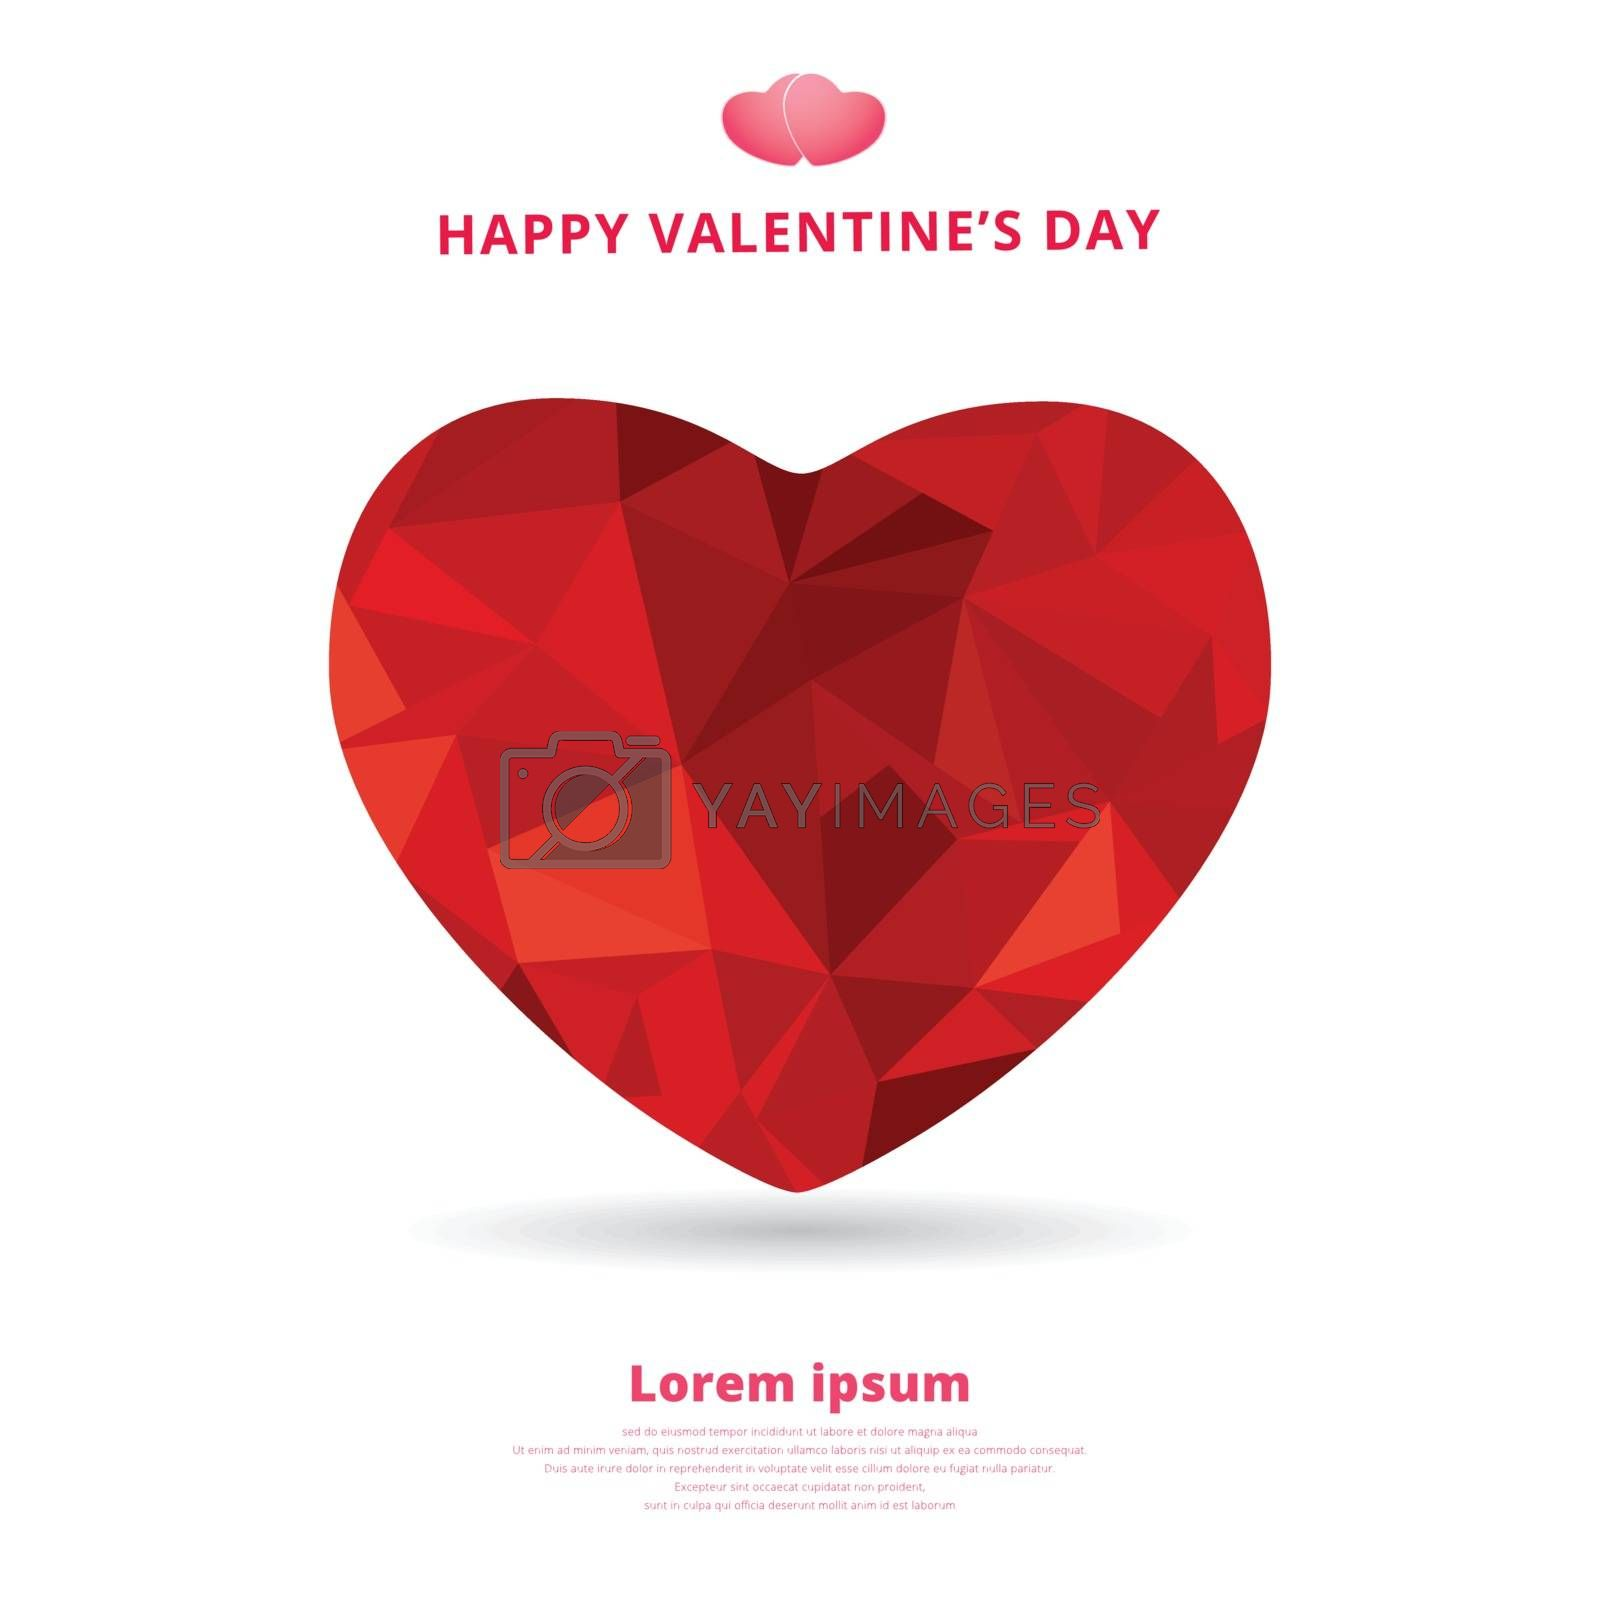 3d origami heart low polygon design shadow for valentines day. vector illustration.